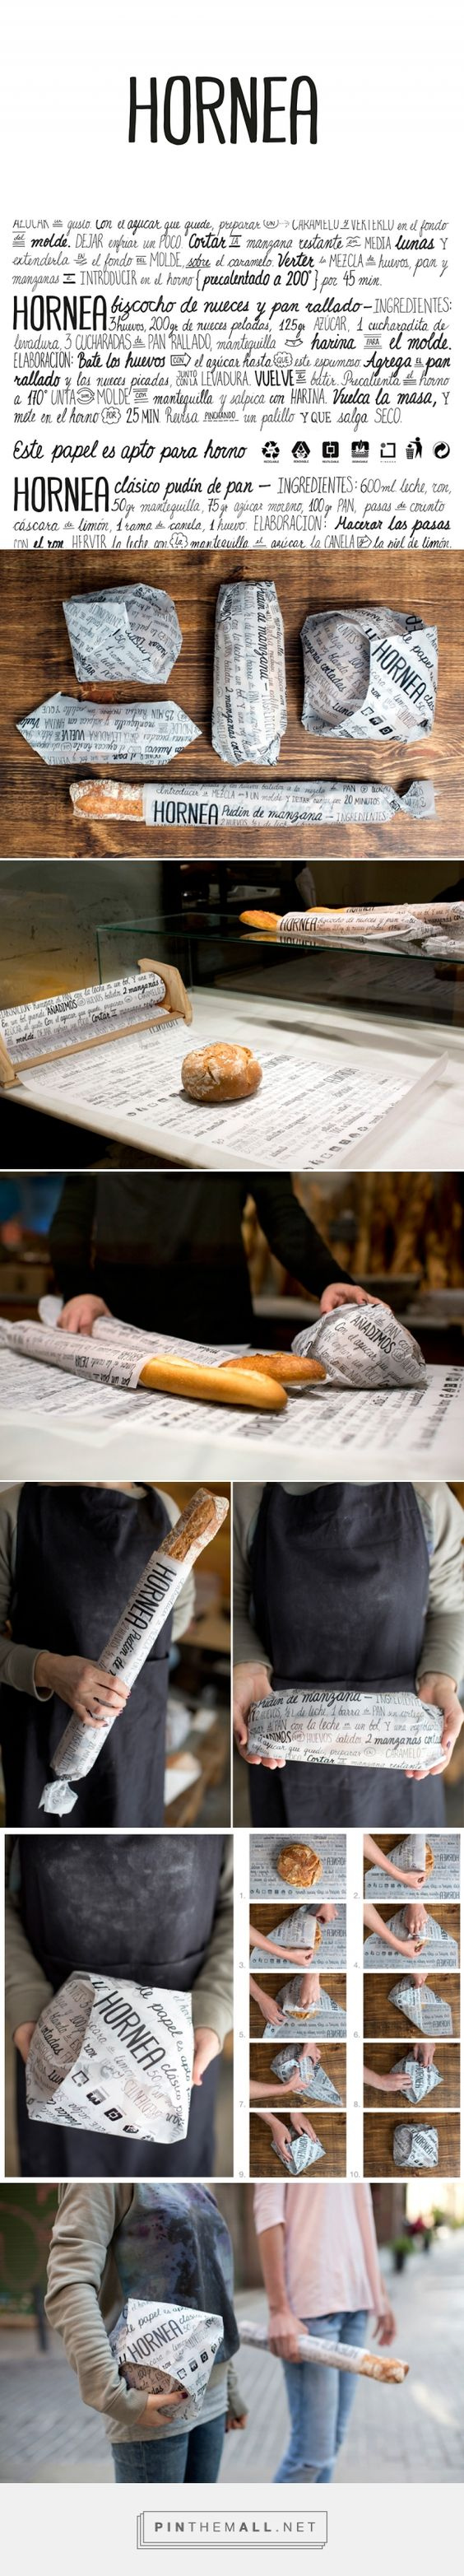 HORNEA - Bakery Packaging on Behance curated by Packaging Diva PD. A wrapping system for bread and pastries adaptable to any size consisting of a parchment-paper roll with recipes printed on it, using only one ecological and recyclable black ink. It's a multifunctional packaging system.